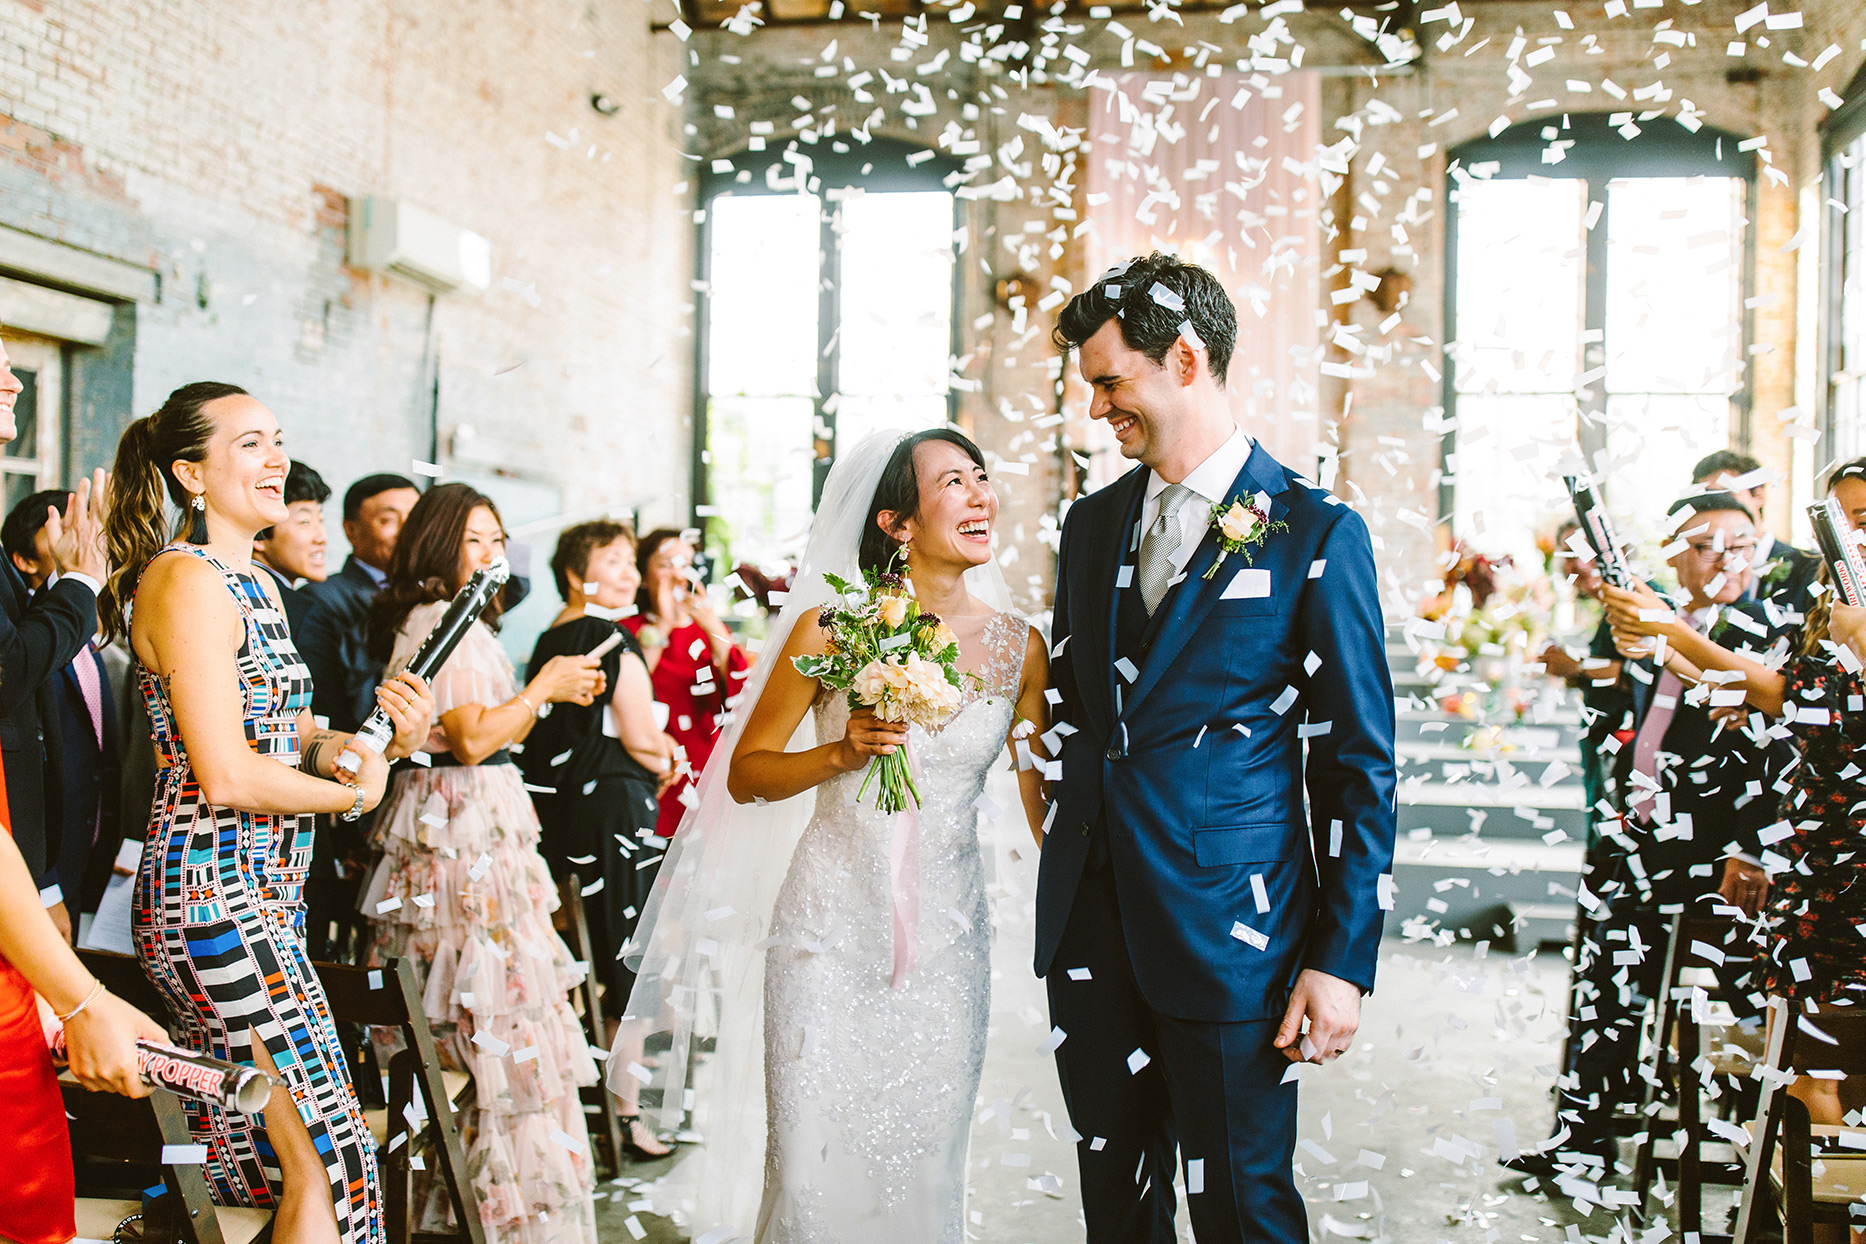 bride and groom exiting industrial wedding in shower of white confetti